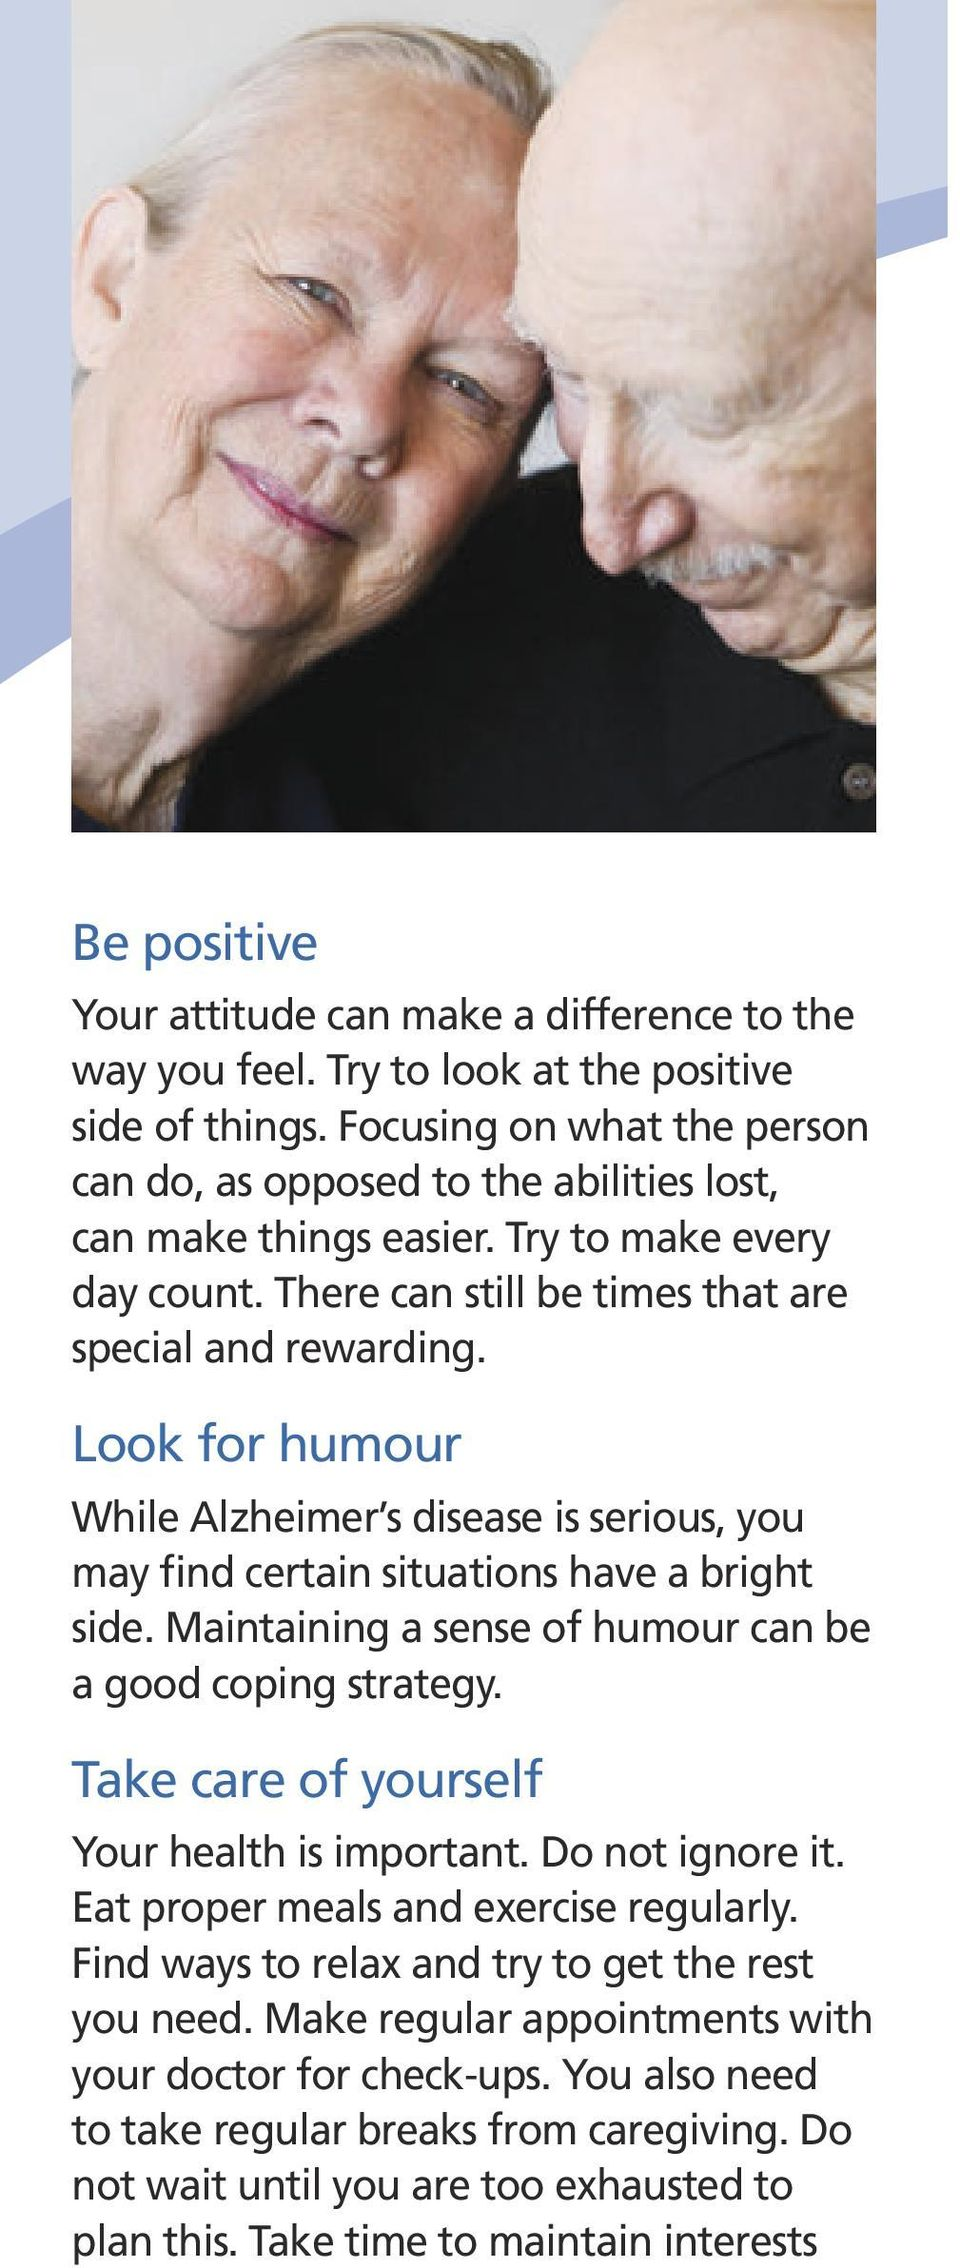 Look for humour While Alzheimer s disease is serious, you may find certain situations have a bright side. Maintaining a sense of humour can be a good coping strategy.